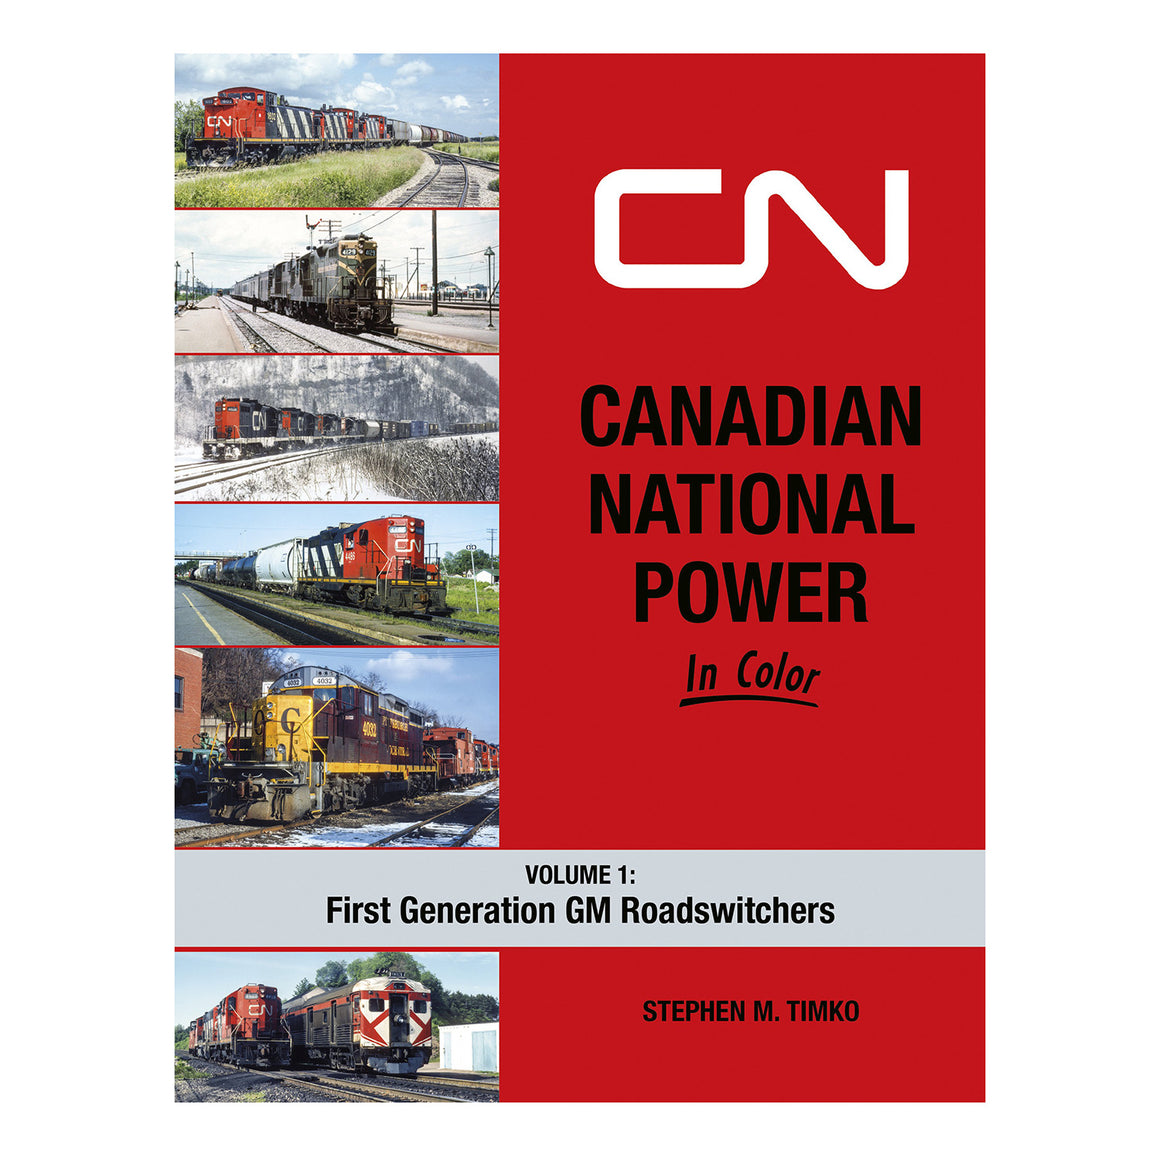 Books: Canadian National Power In Color - Volume 1